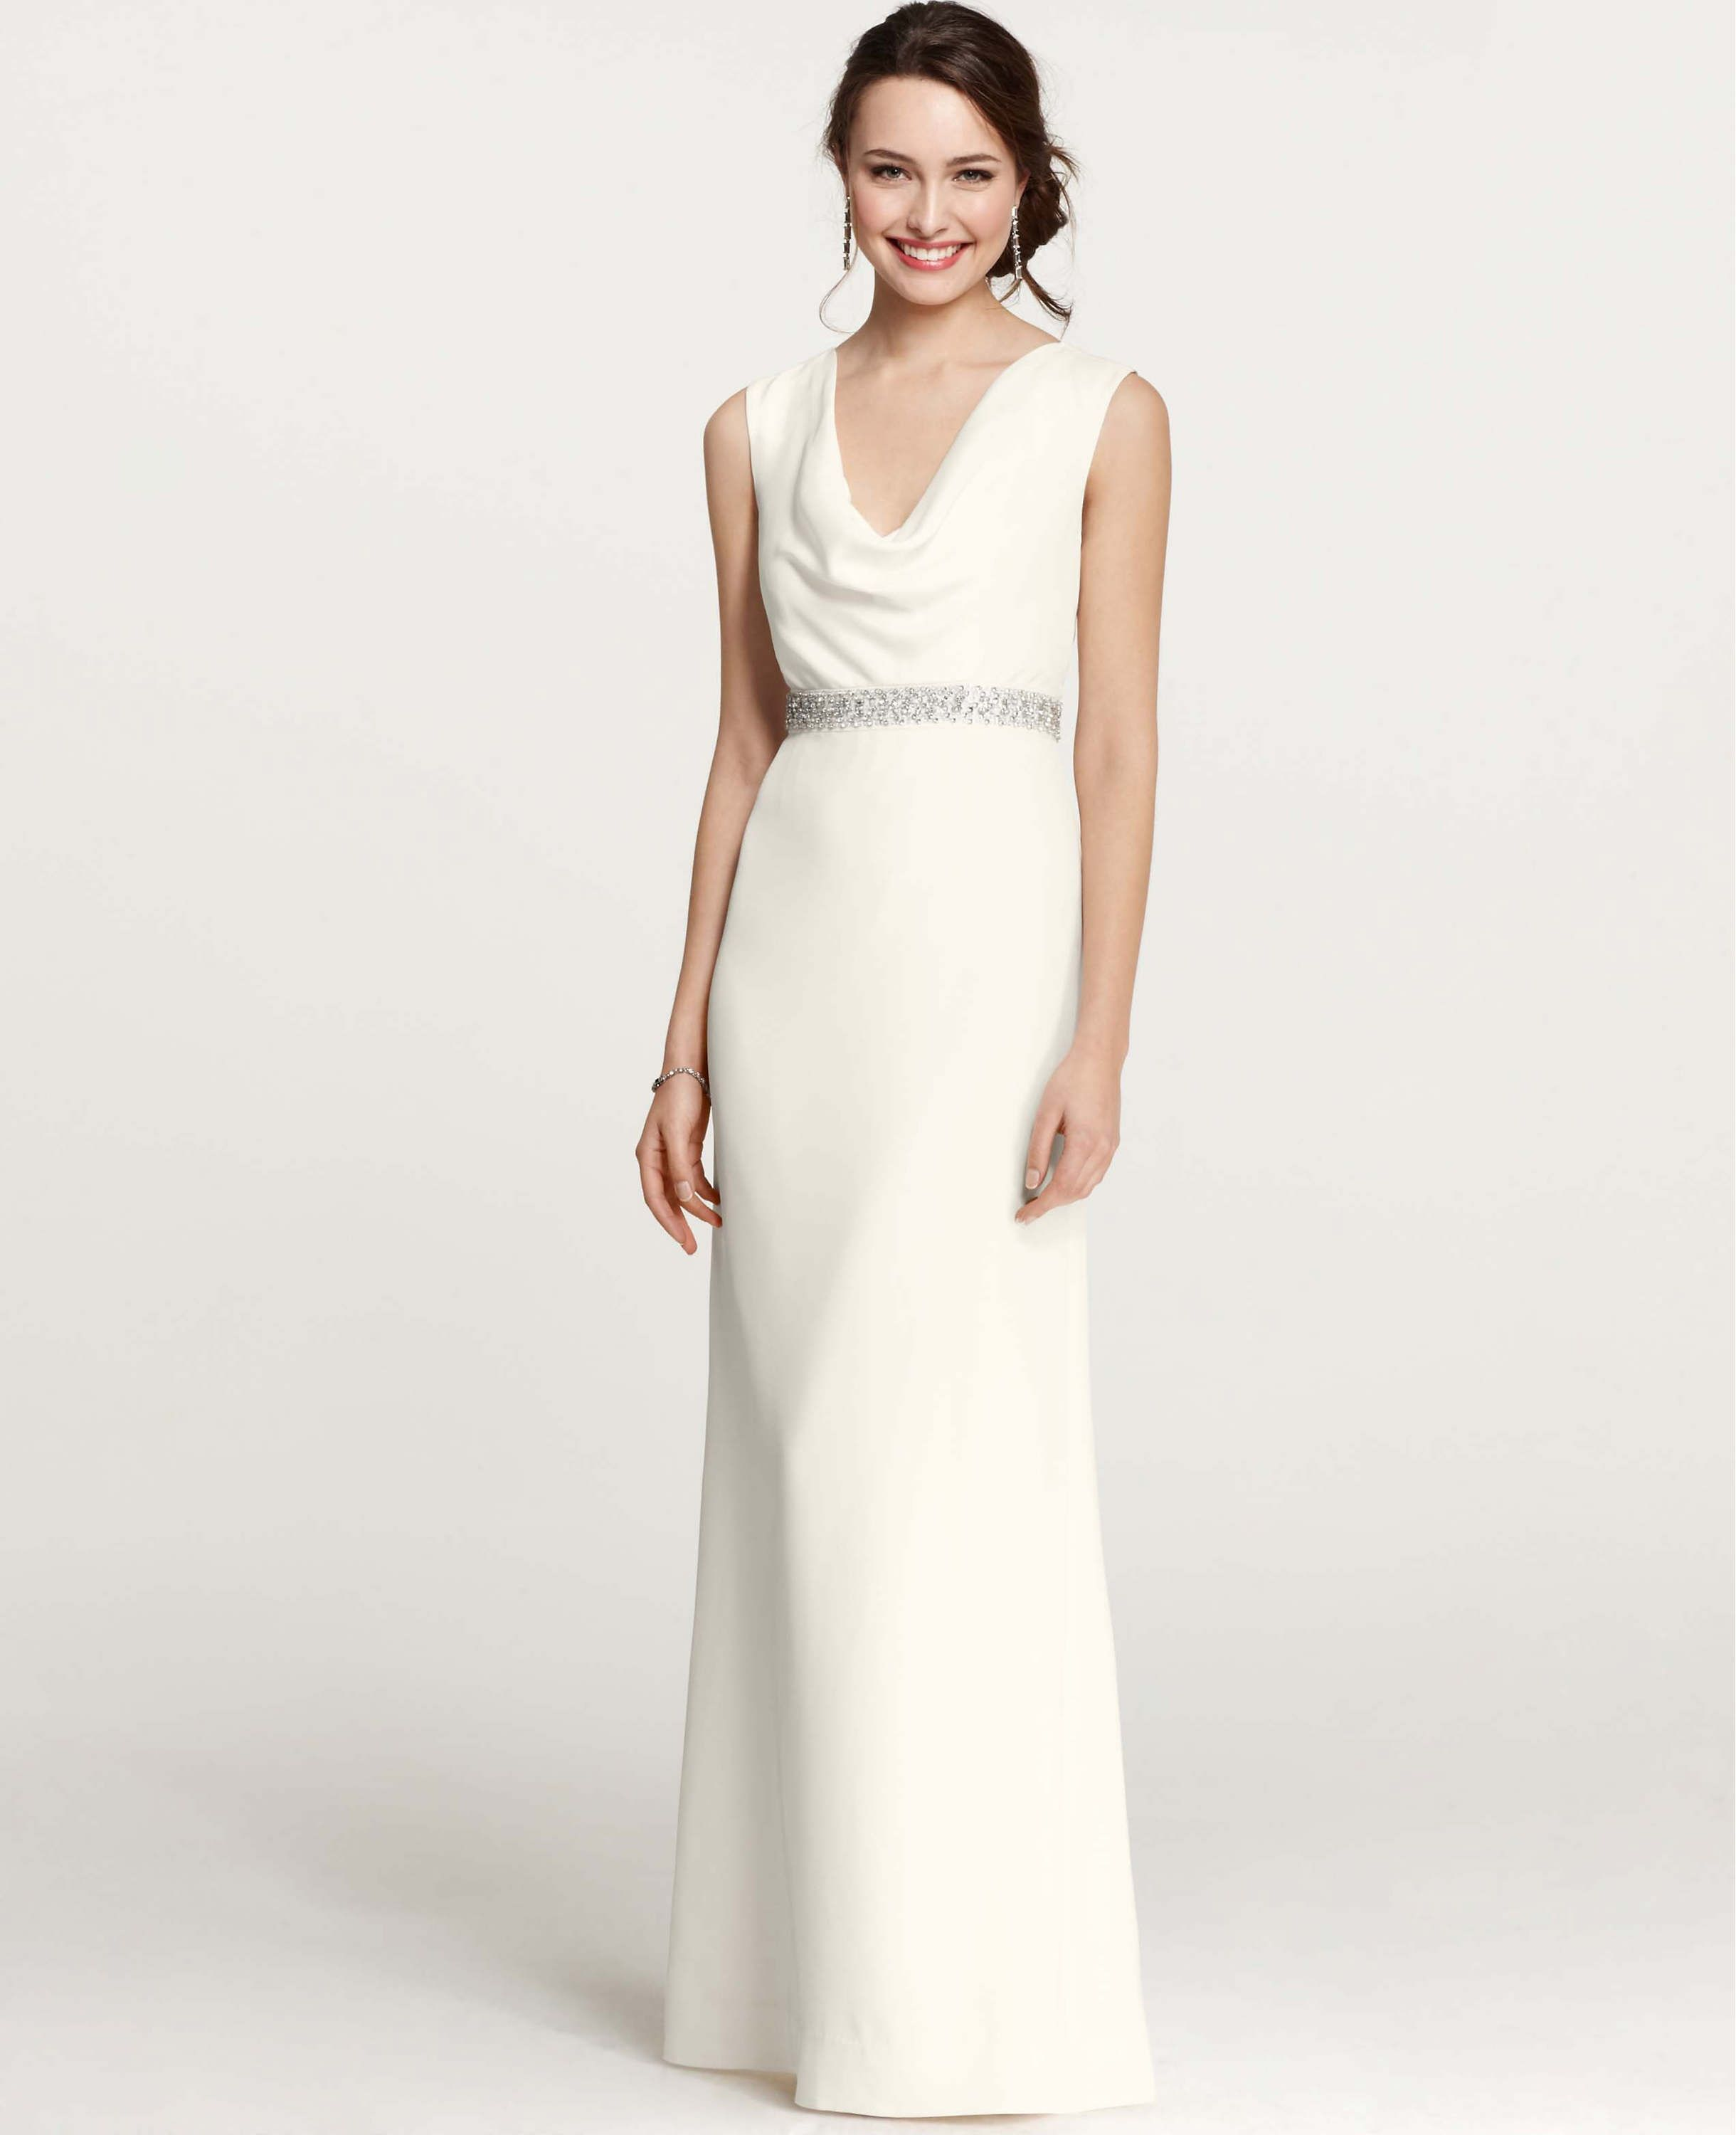 Mya Cowl Neck Wedding Dress | Ann Taylor | Dress/Veil | Pinterest